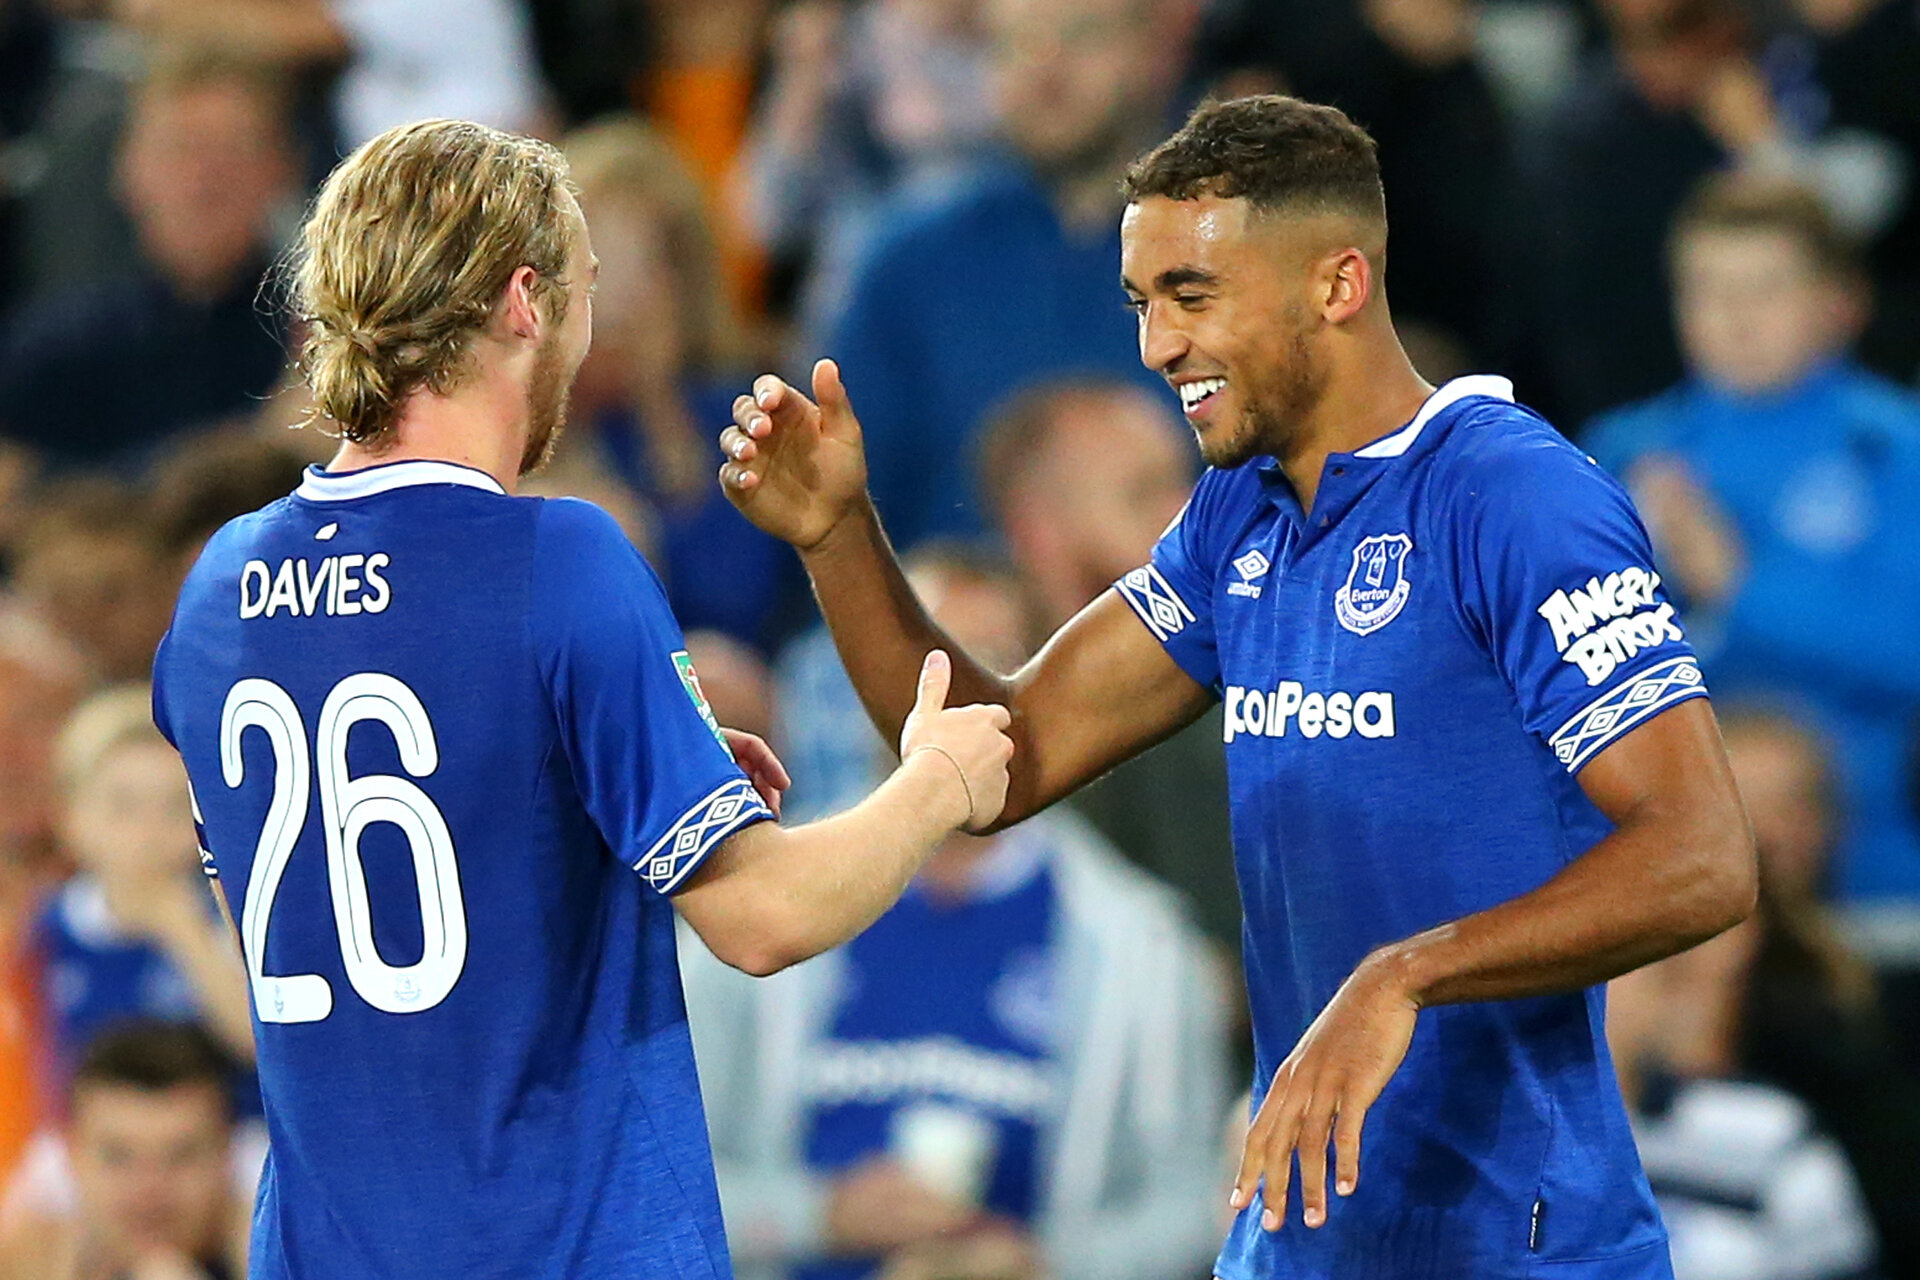 LIVERPOOL, ENGLAND - AUGUST 29:  Dominic Calvert-Lewin of Everton celebrates with teammate Tom Davies after scoring his team's second goal during the Carabao Cup Second Round match between Everton and Rotherham United at Goodison Park on August 29, 2018 in Liverpool, England.  (Photo by Alex Livesey/Getty Images)